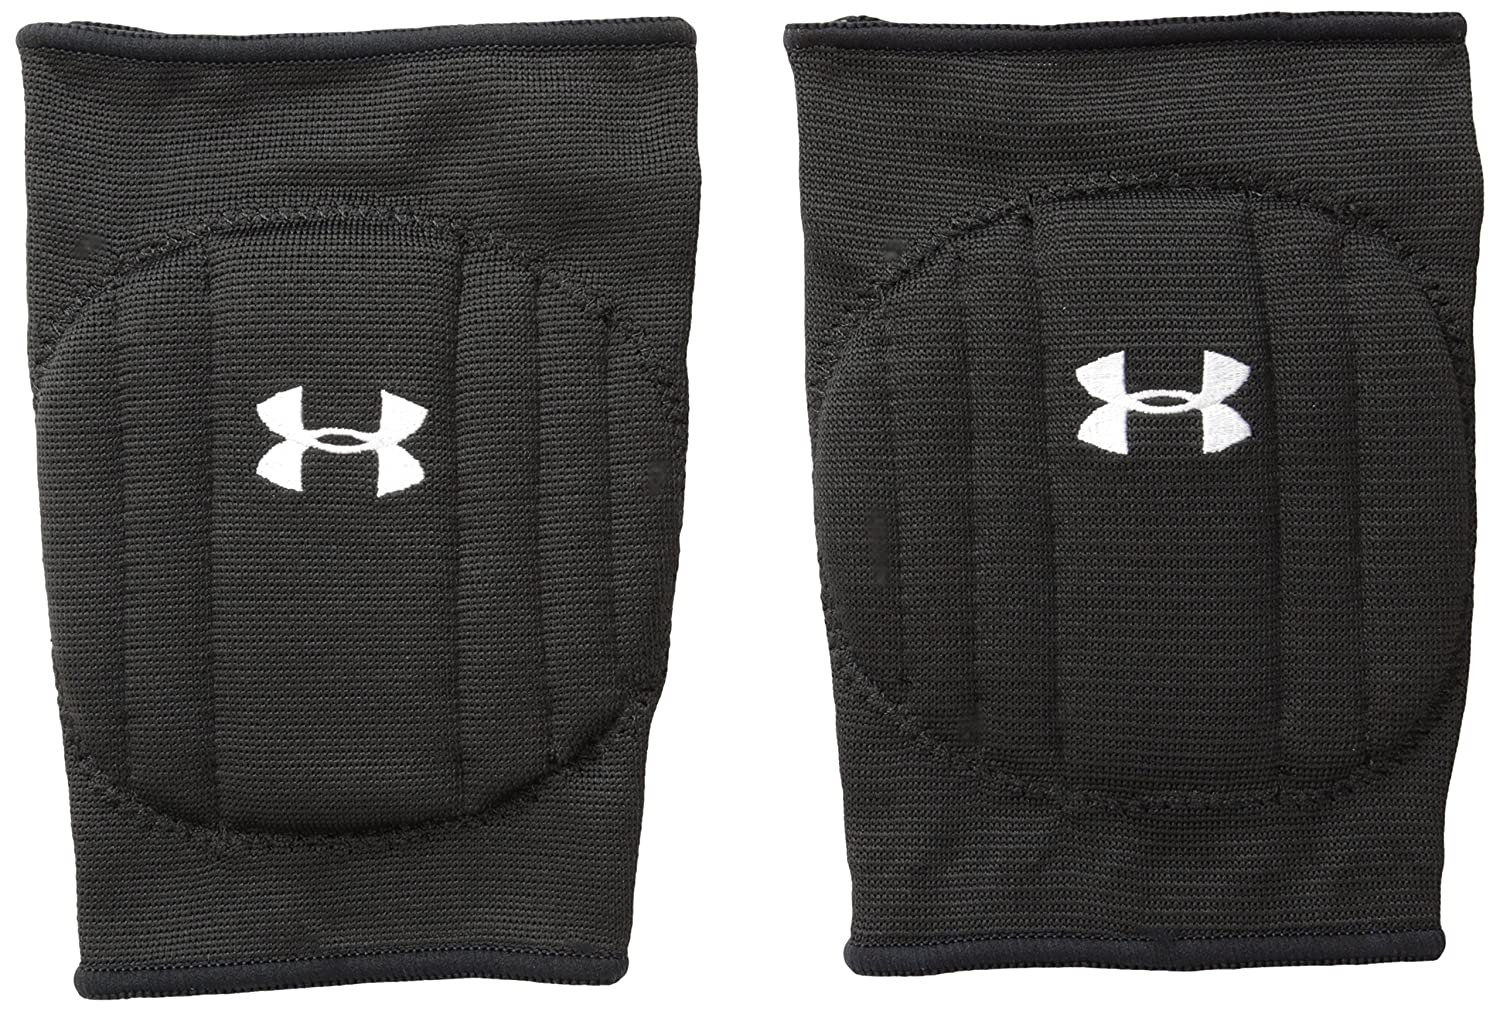 The Best Volleyball Knee Pads 2